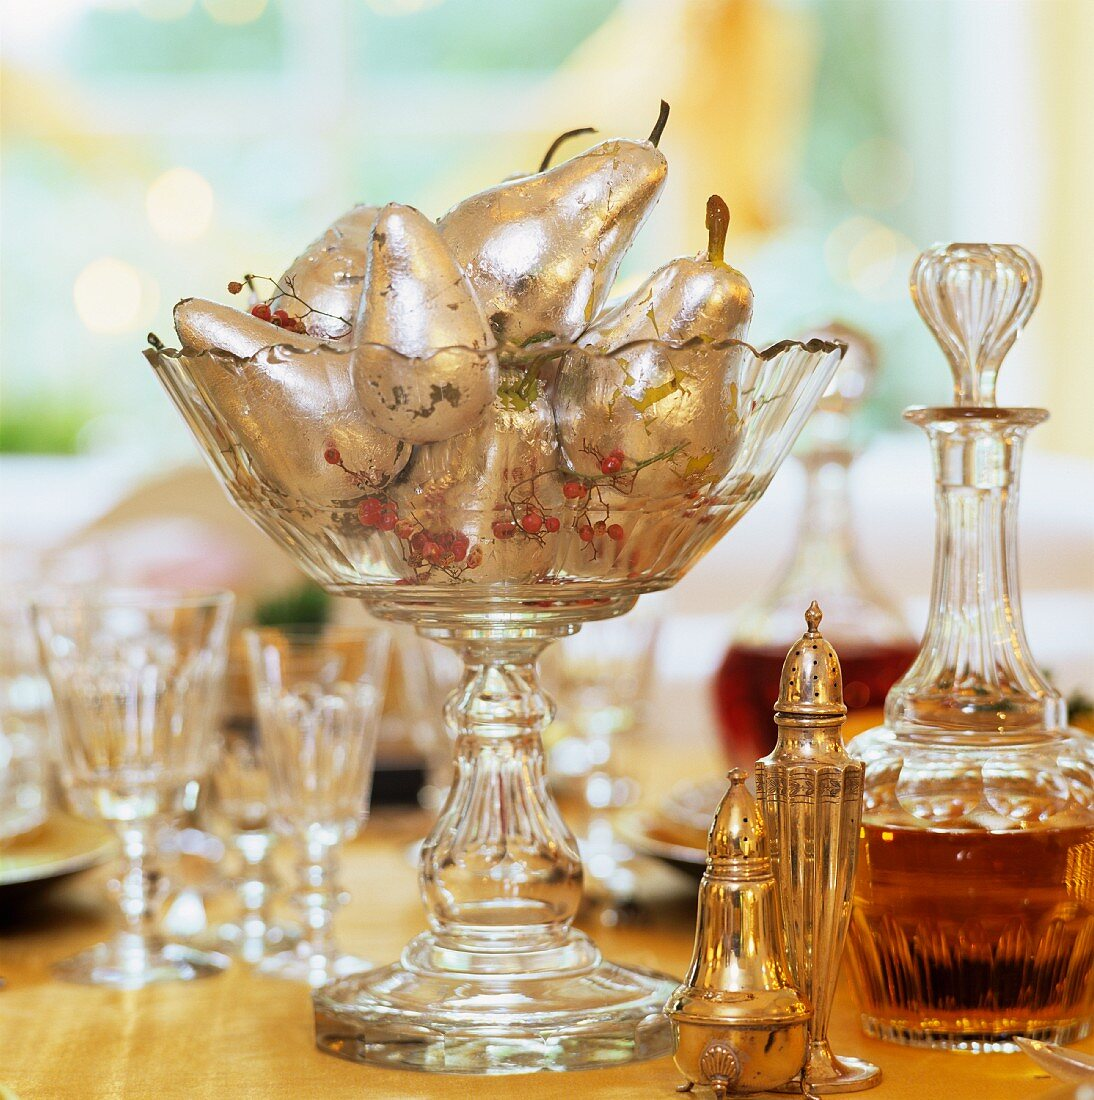 Silver ornamental pears in glass goblet next to crystal decanter and silver cruet